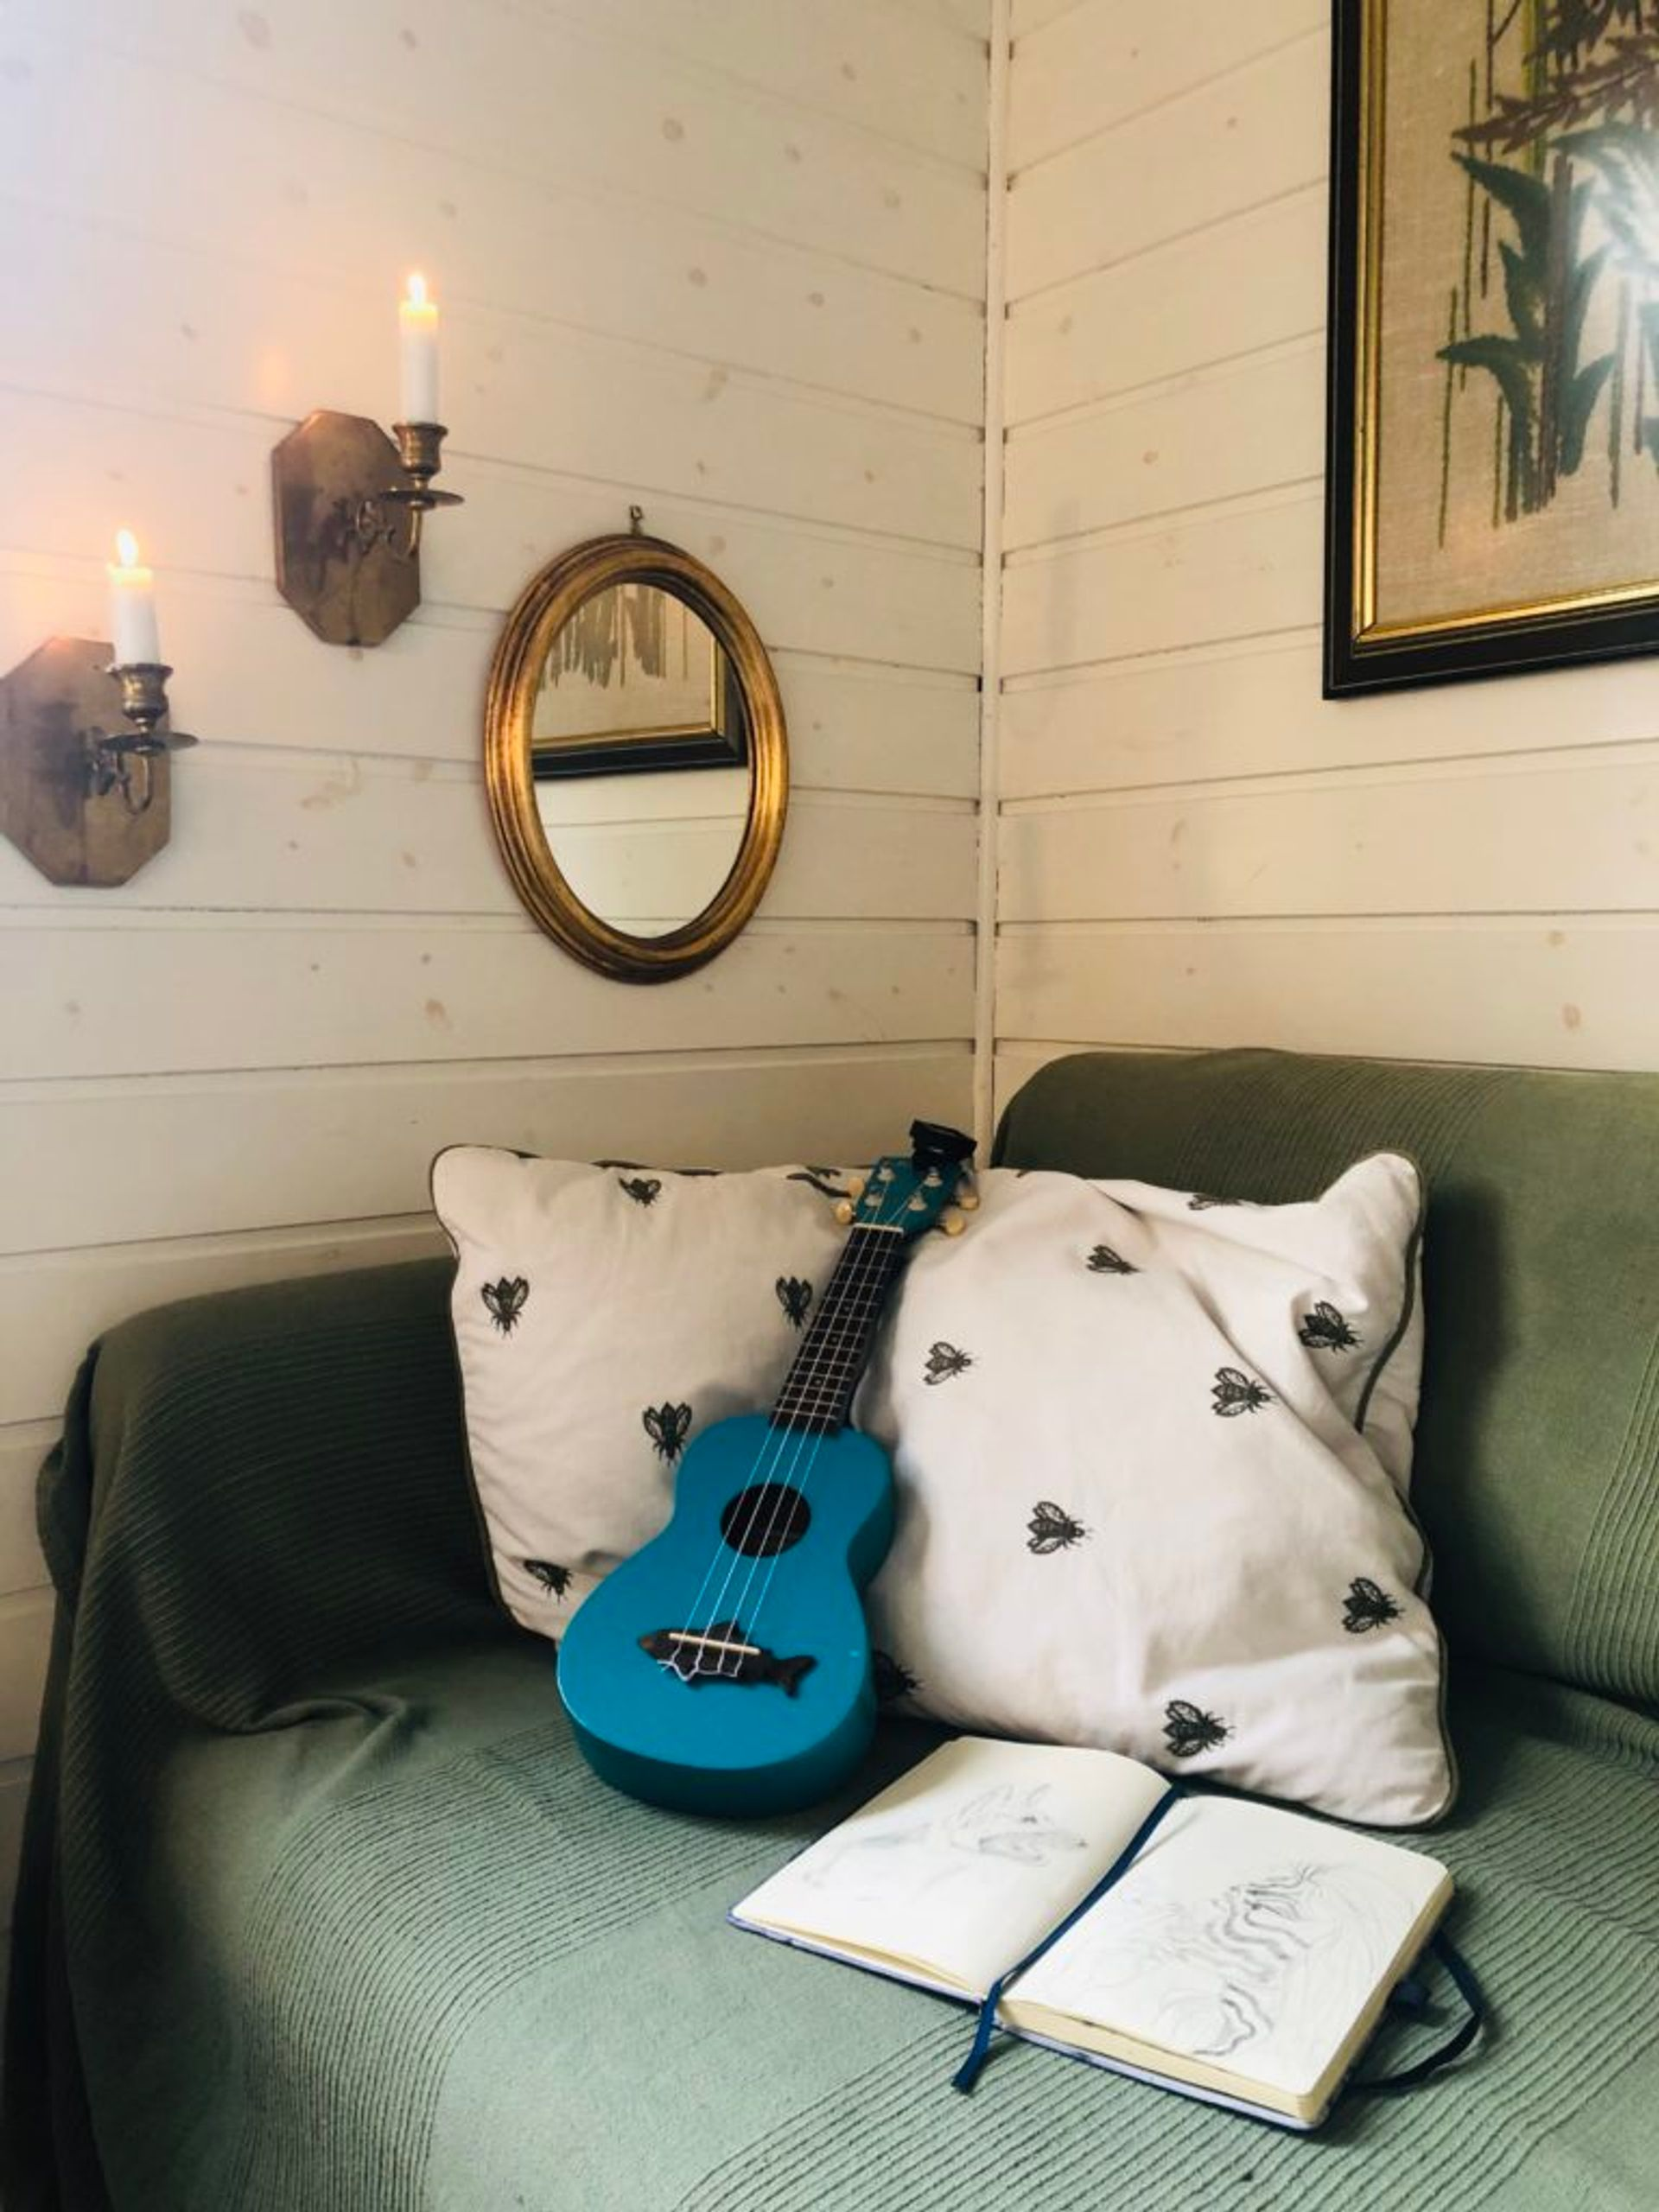 A sofa, covered in a green blanket. On the sofa are two cushions, a blue ukelele and a notebook.